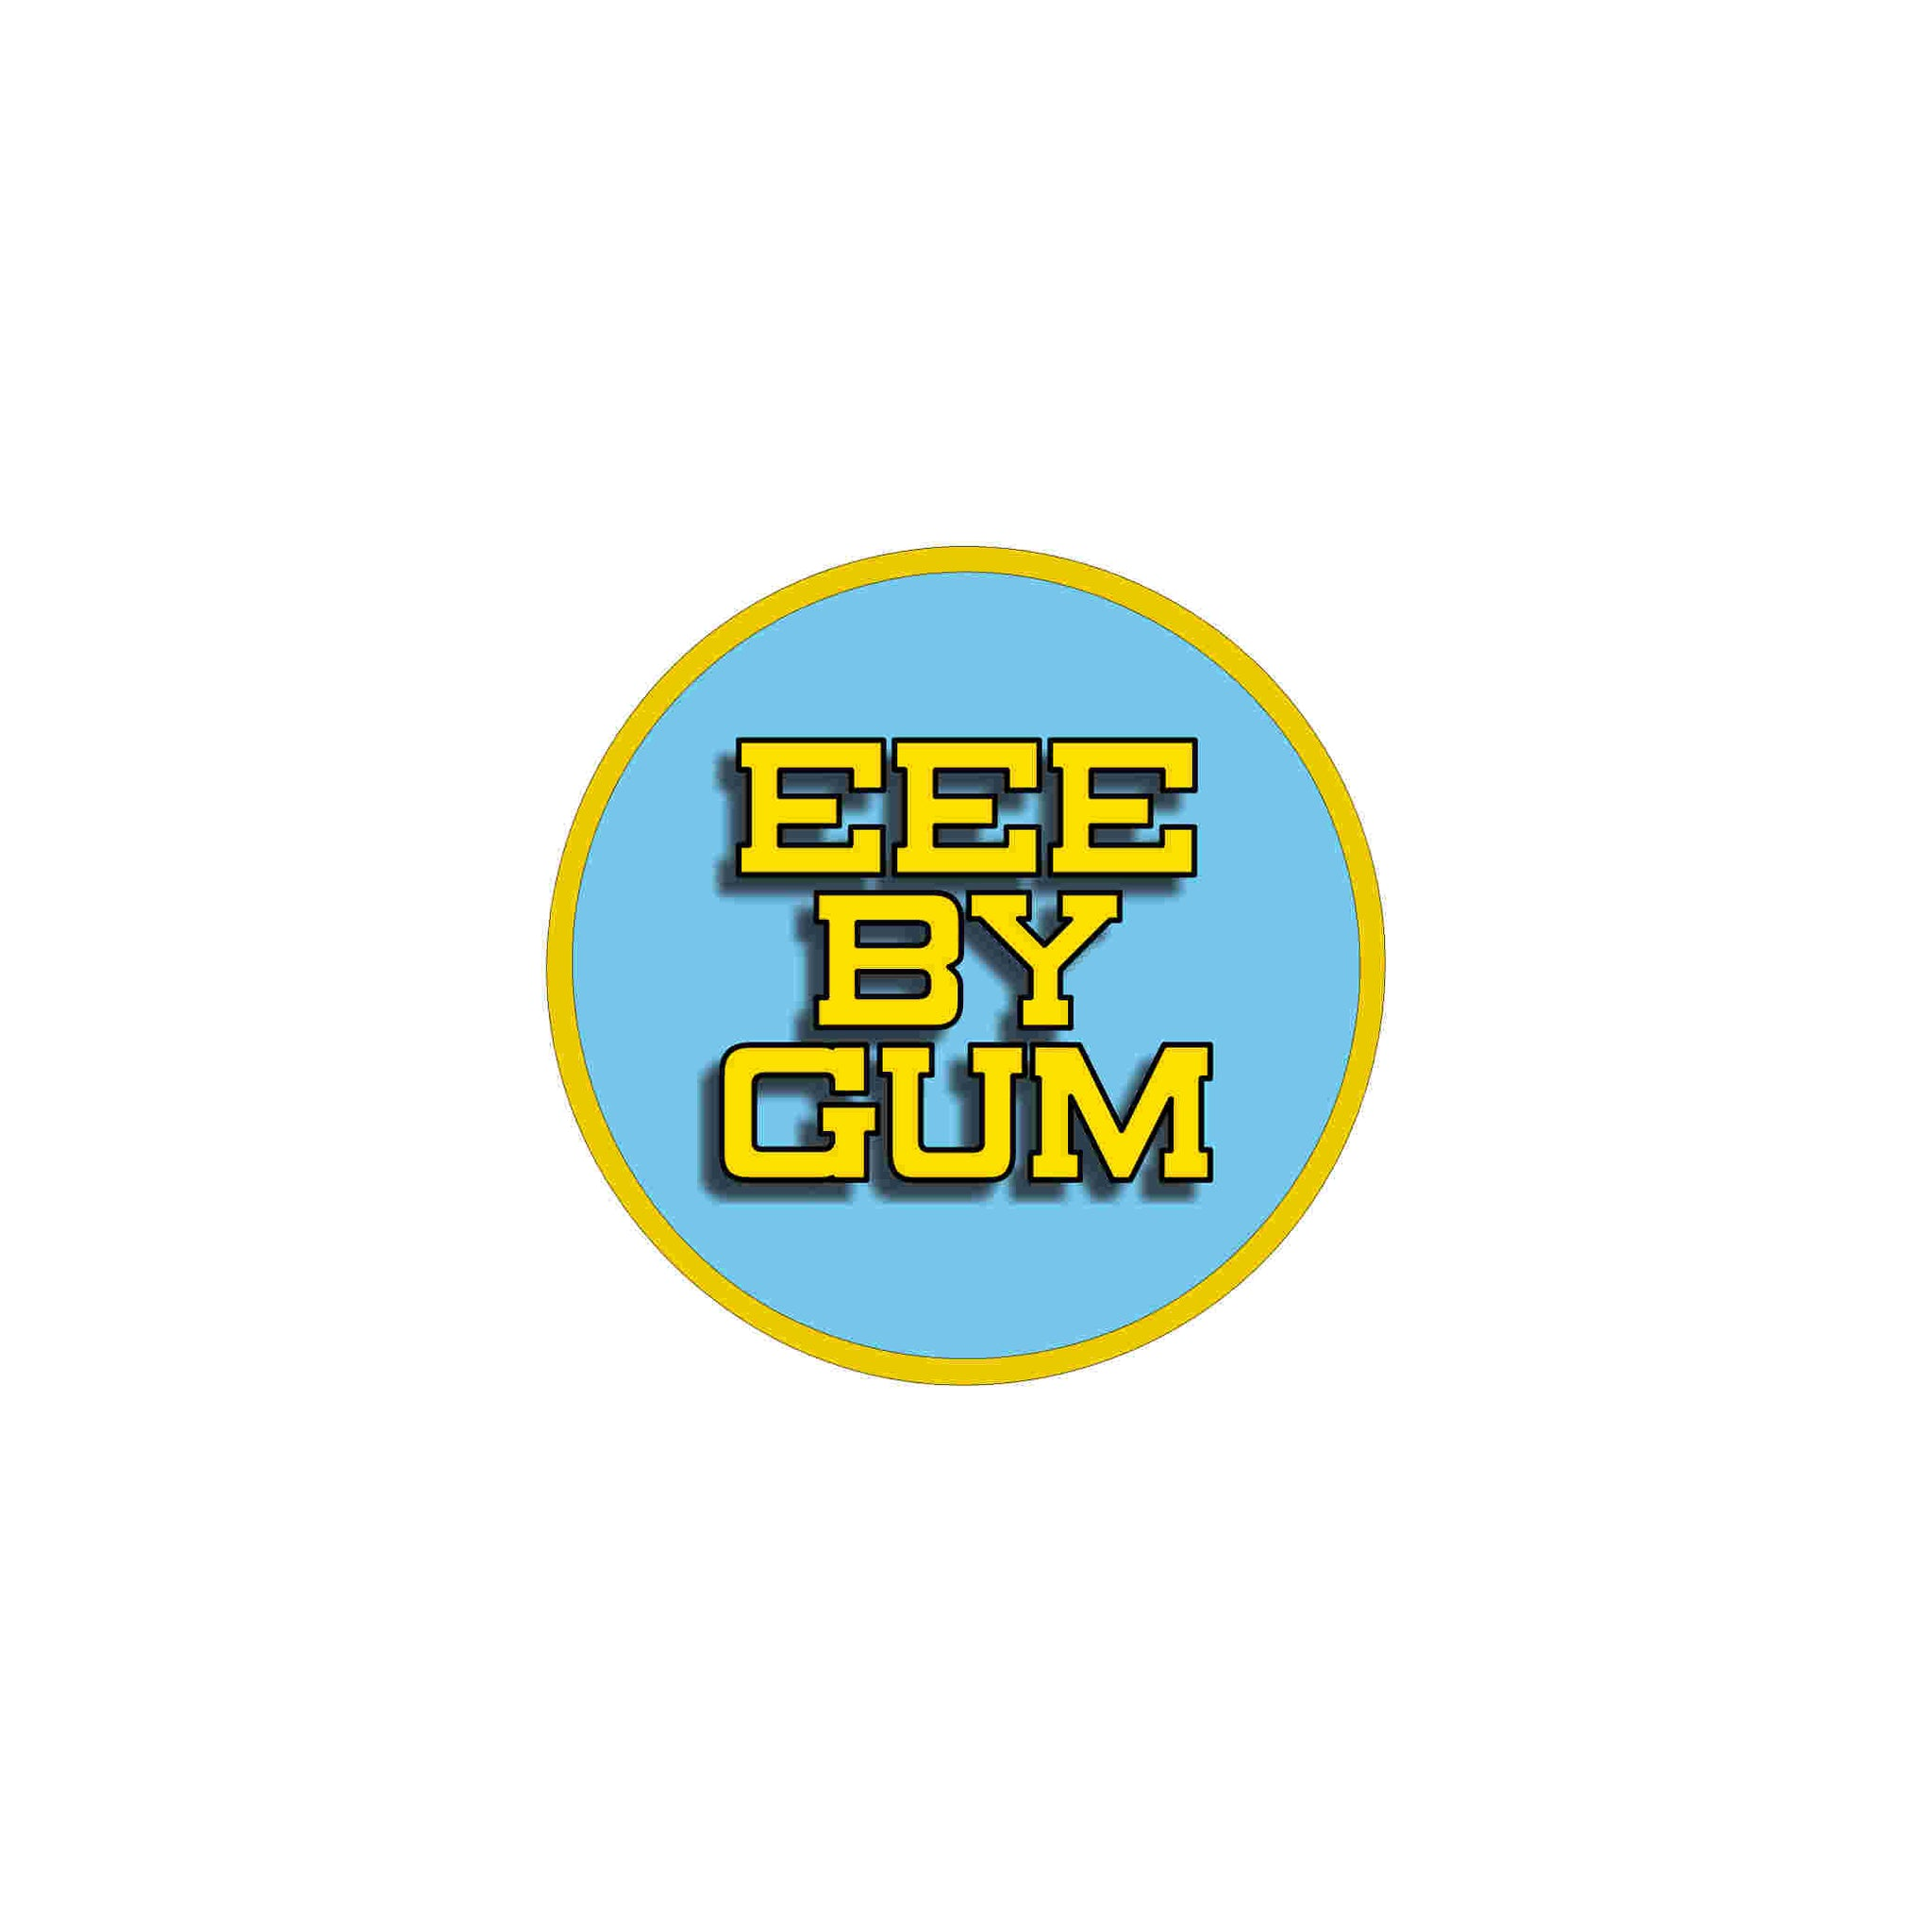 Eee By Gum Lapel Pin